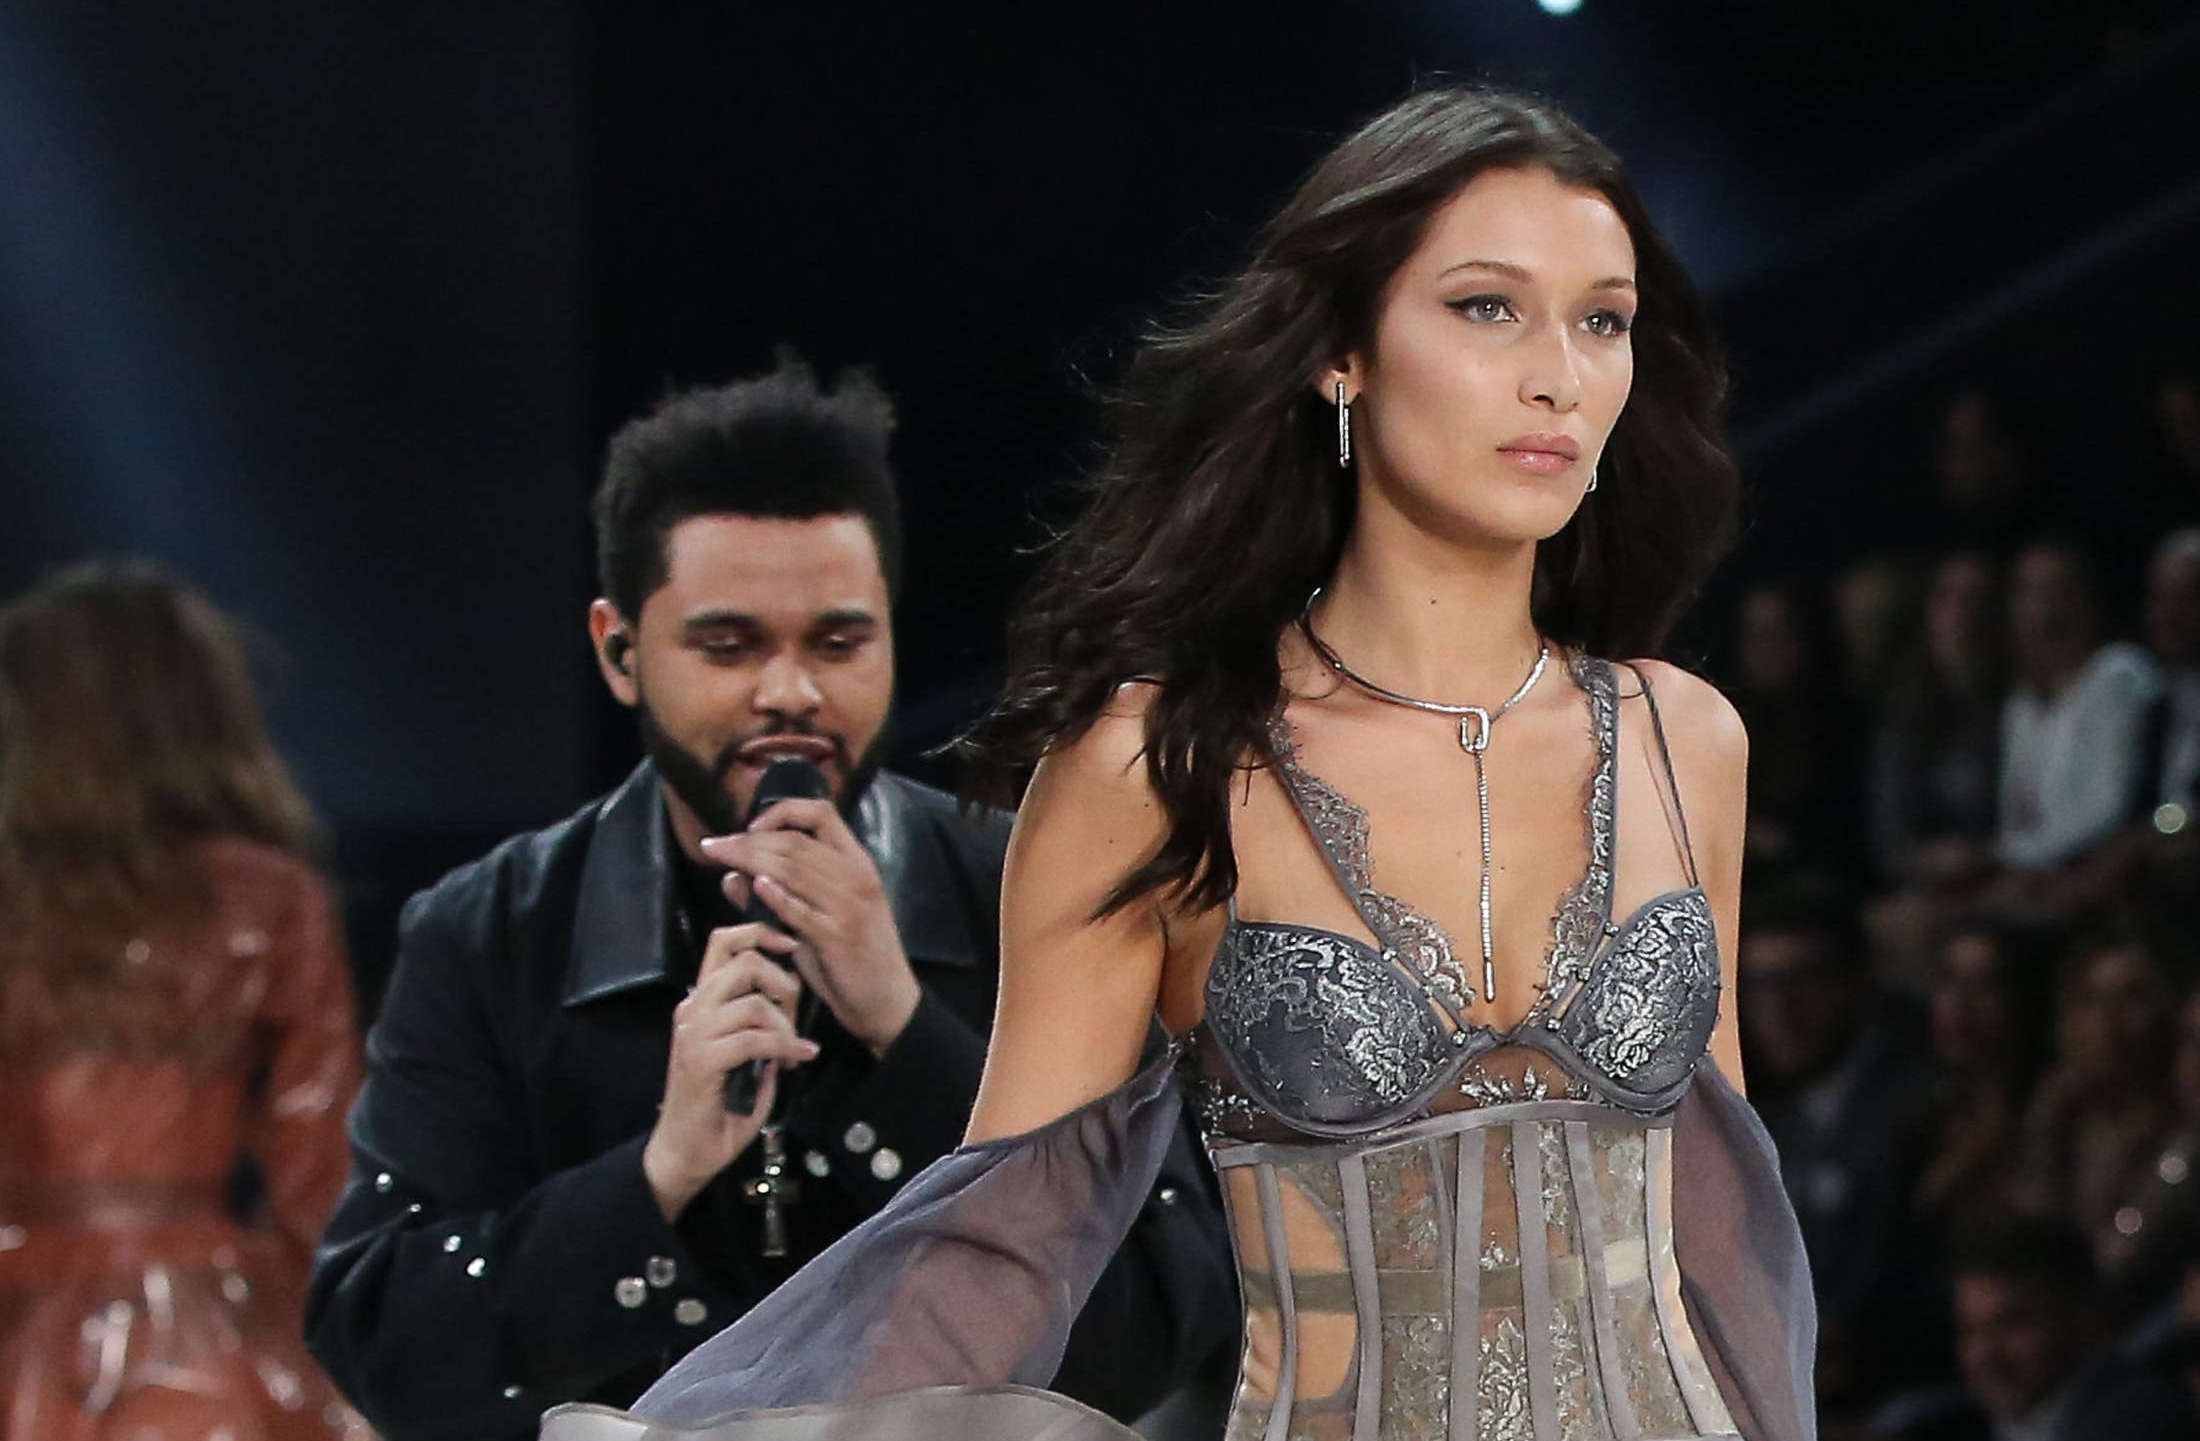 The Weeknd, Bella Hadid Dating Again After Selena Gomez Split?